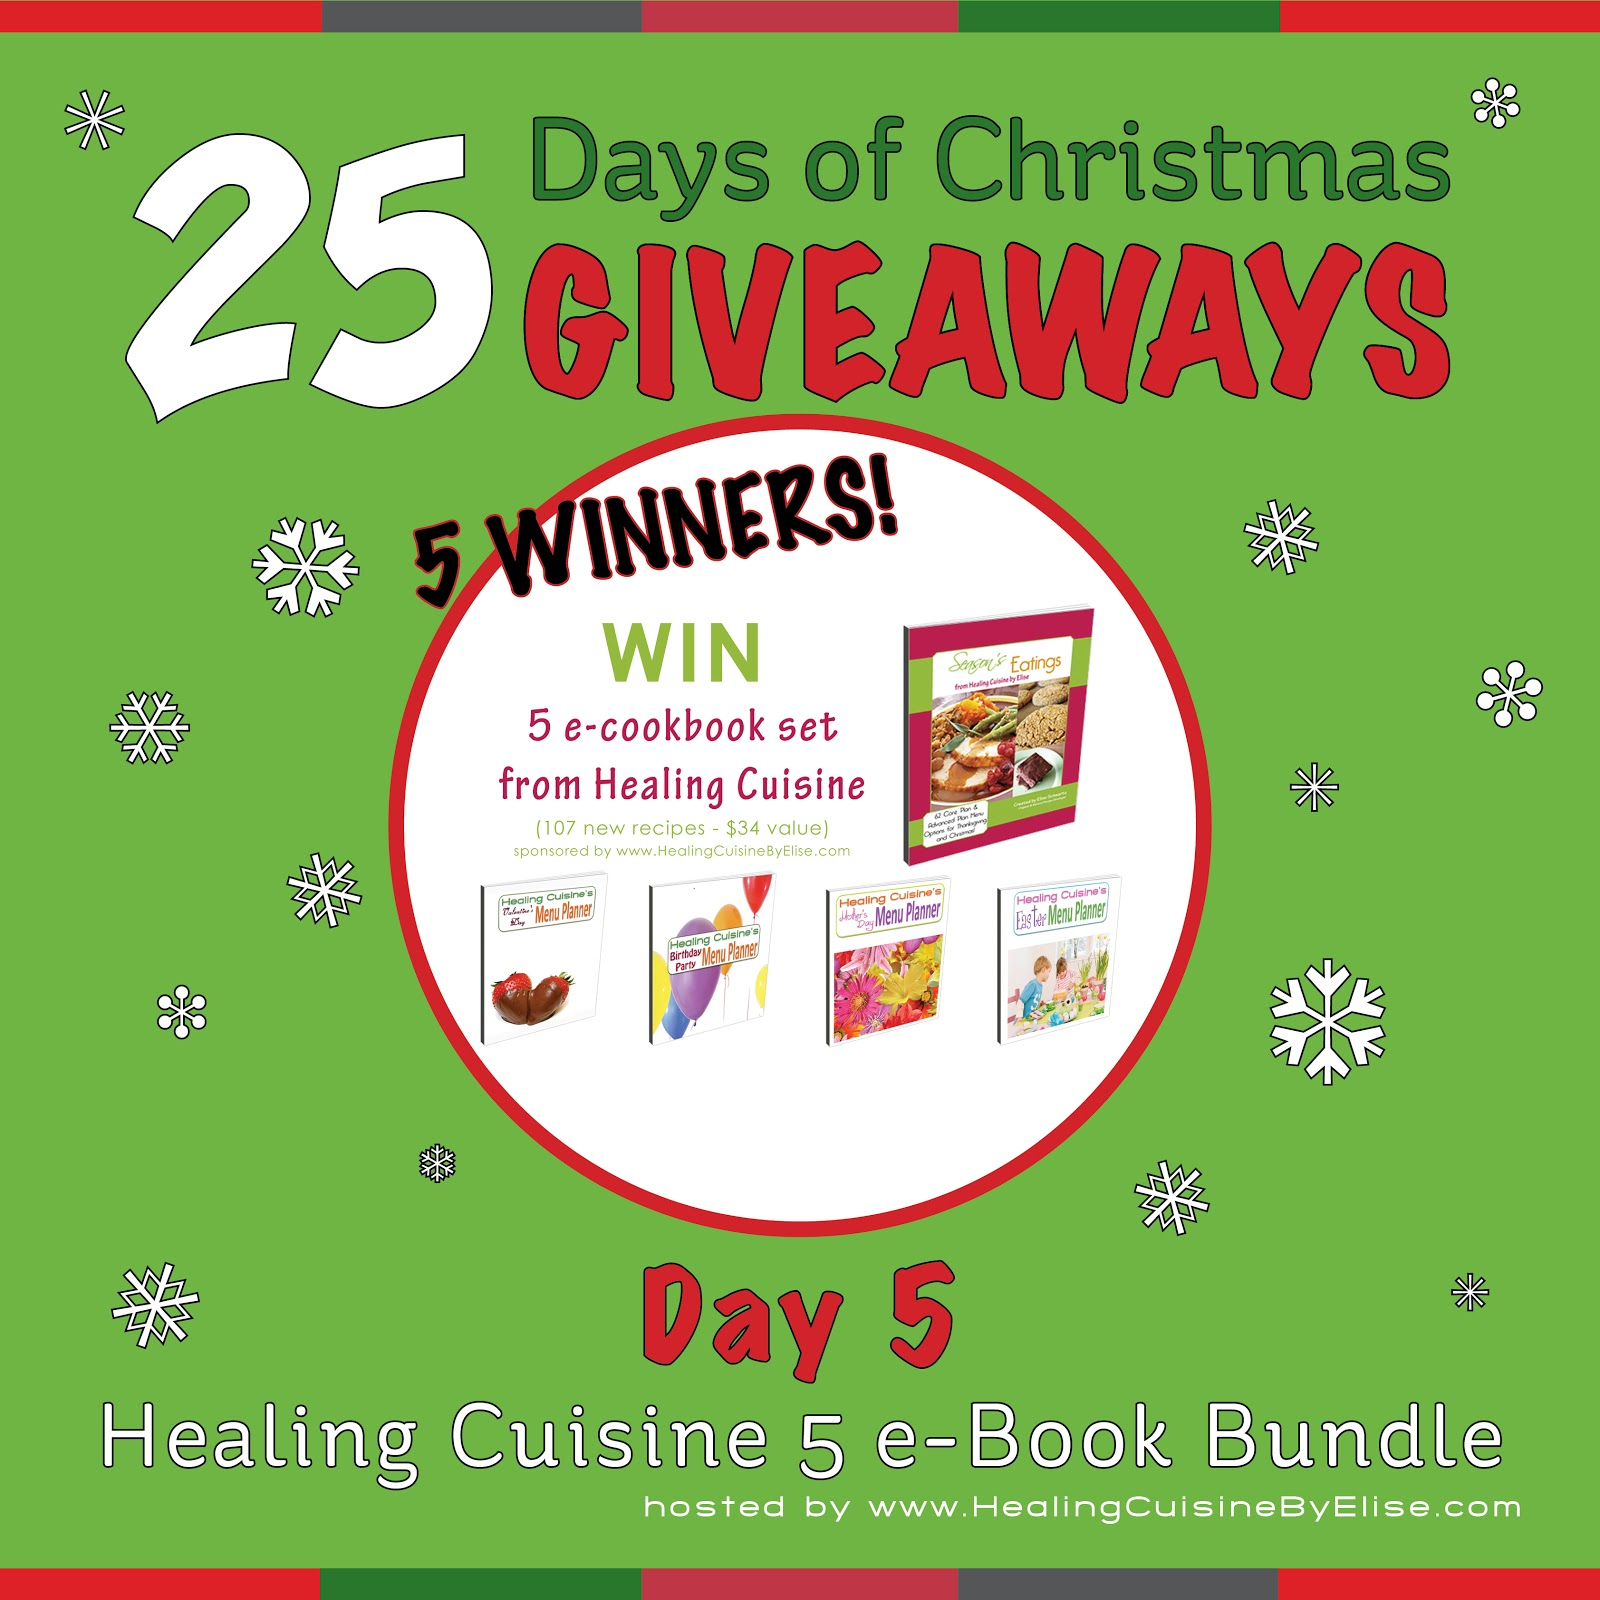 BEST HOLIDAY EBOOK GIVEAWAYS